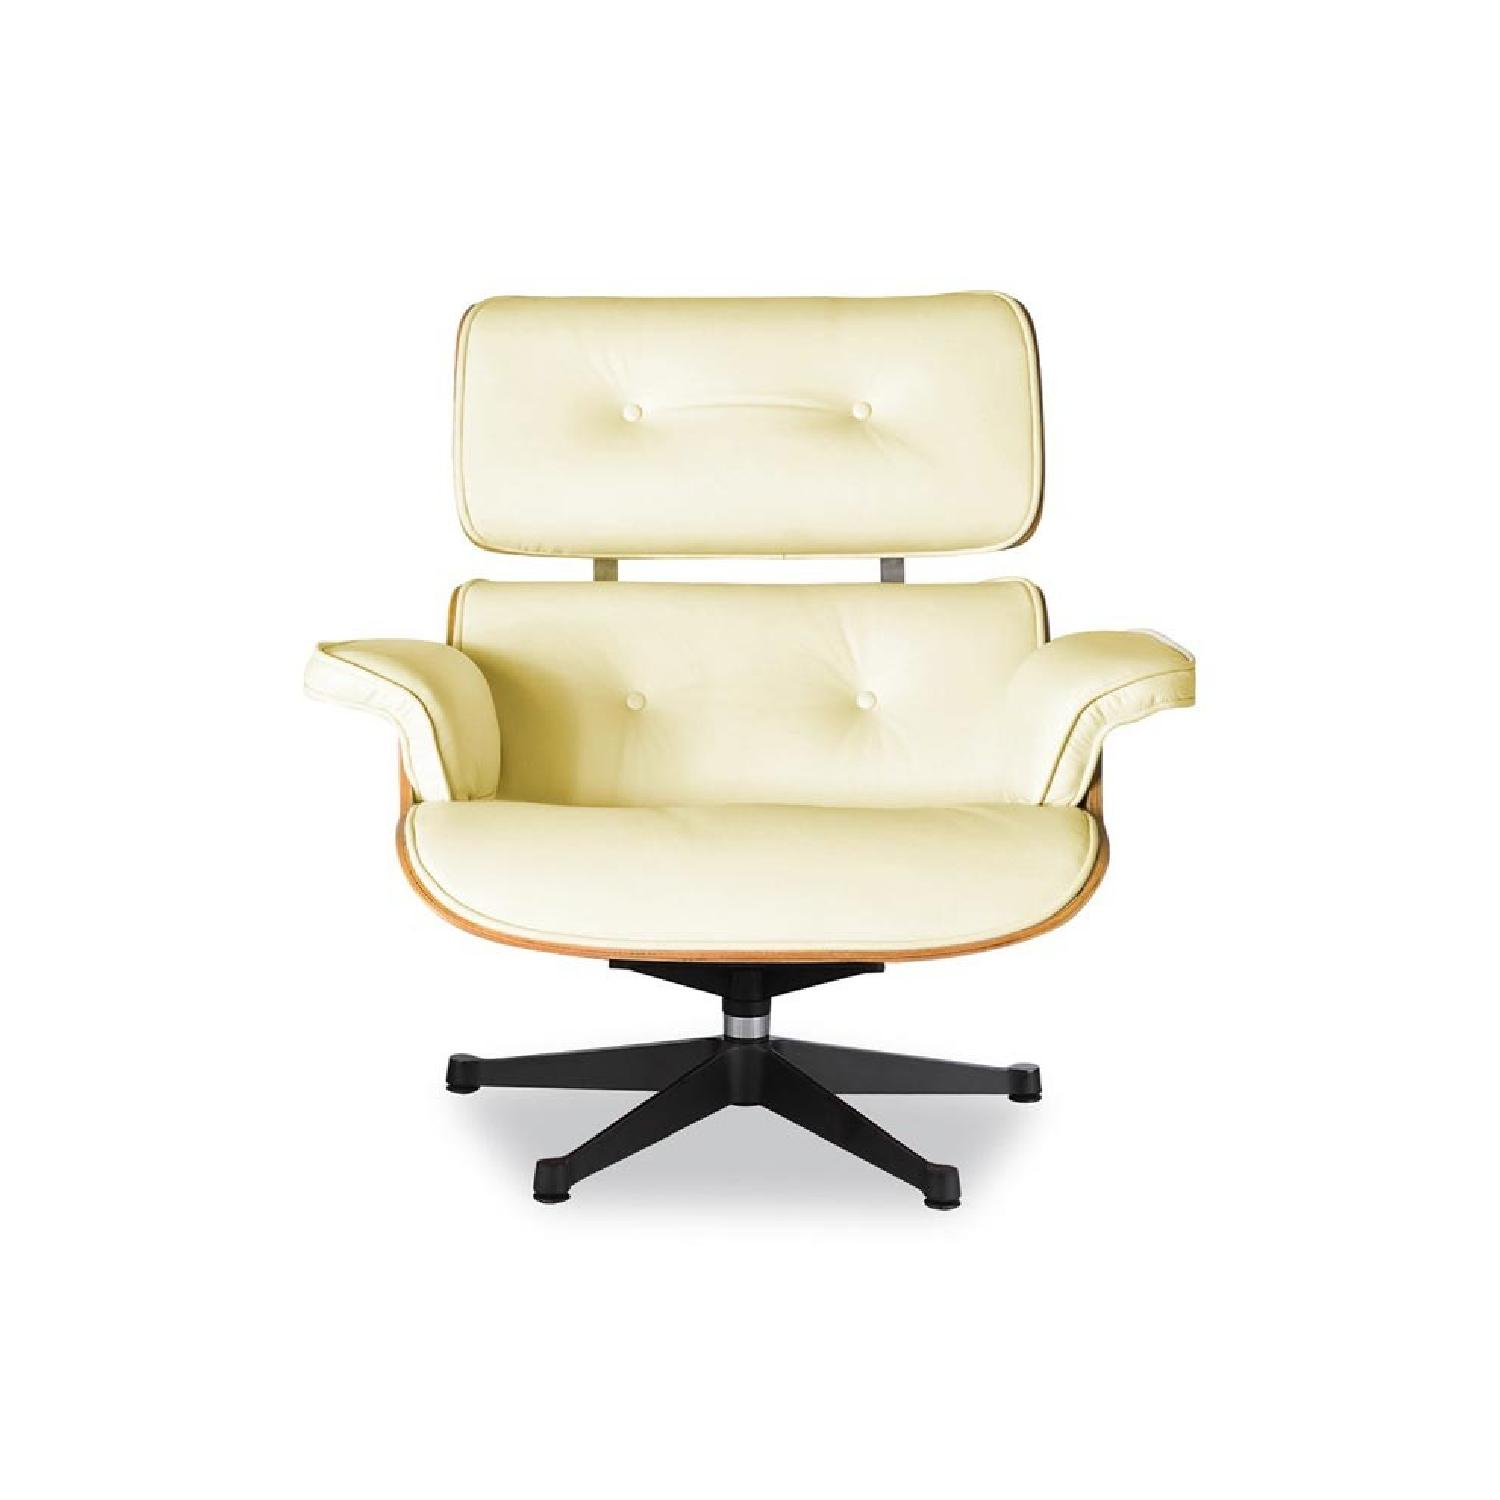 Eames Lounge Chair Replica in Cream AptDeco